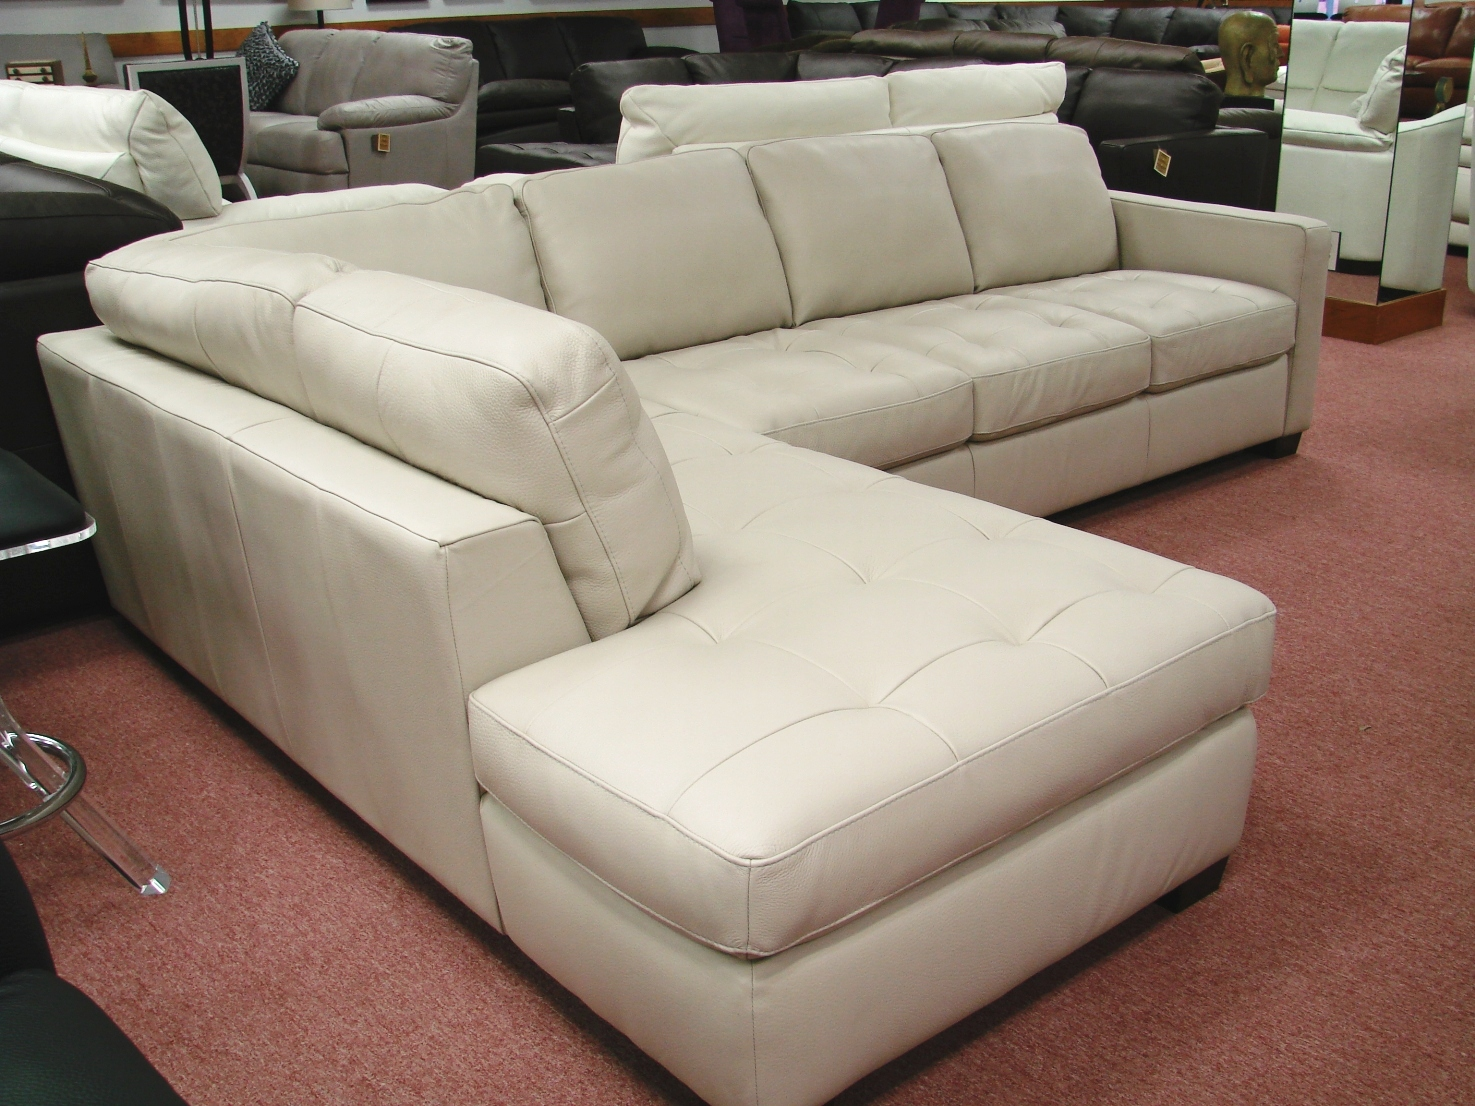 Natuzzi leather sofas sectionals by interior concepts for Sales on furniture online